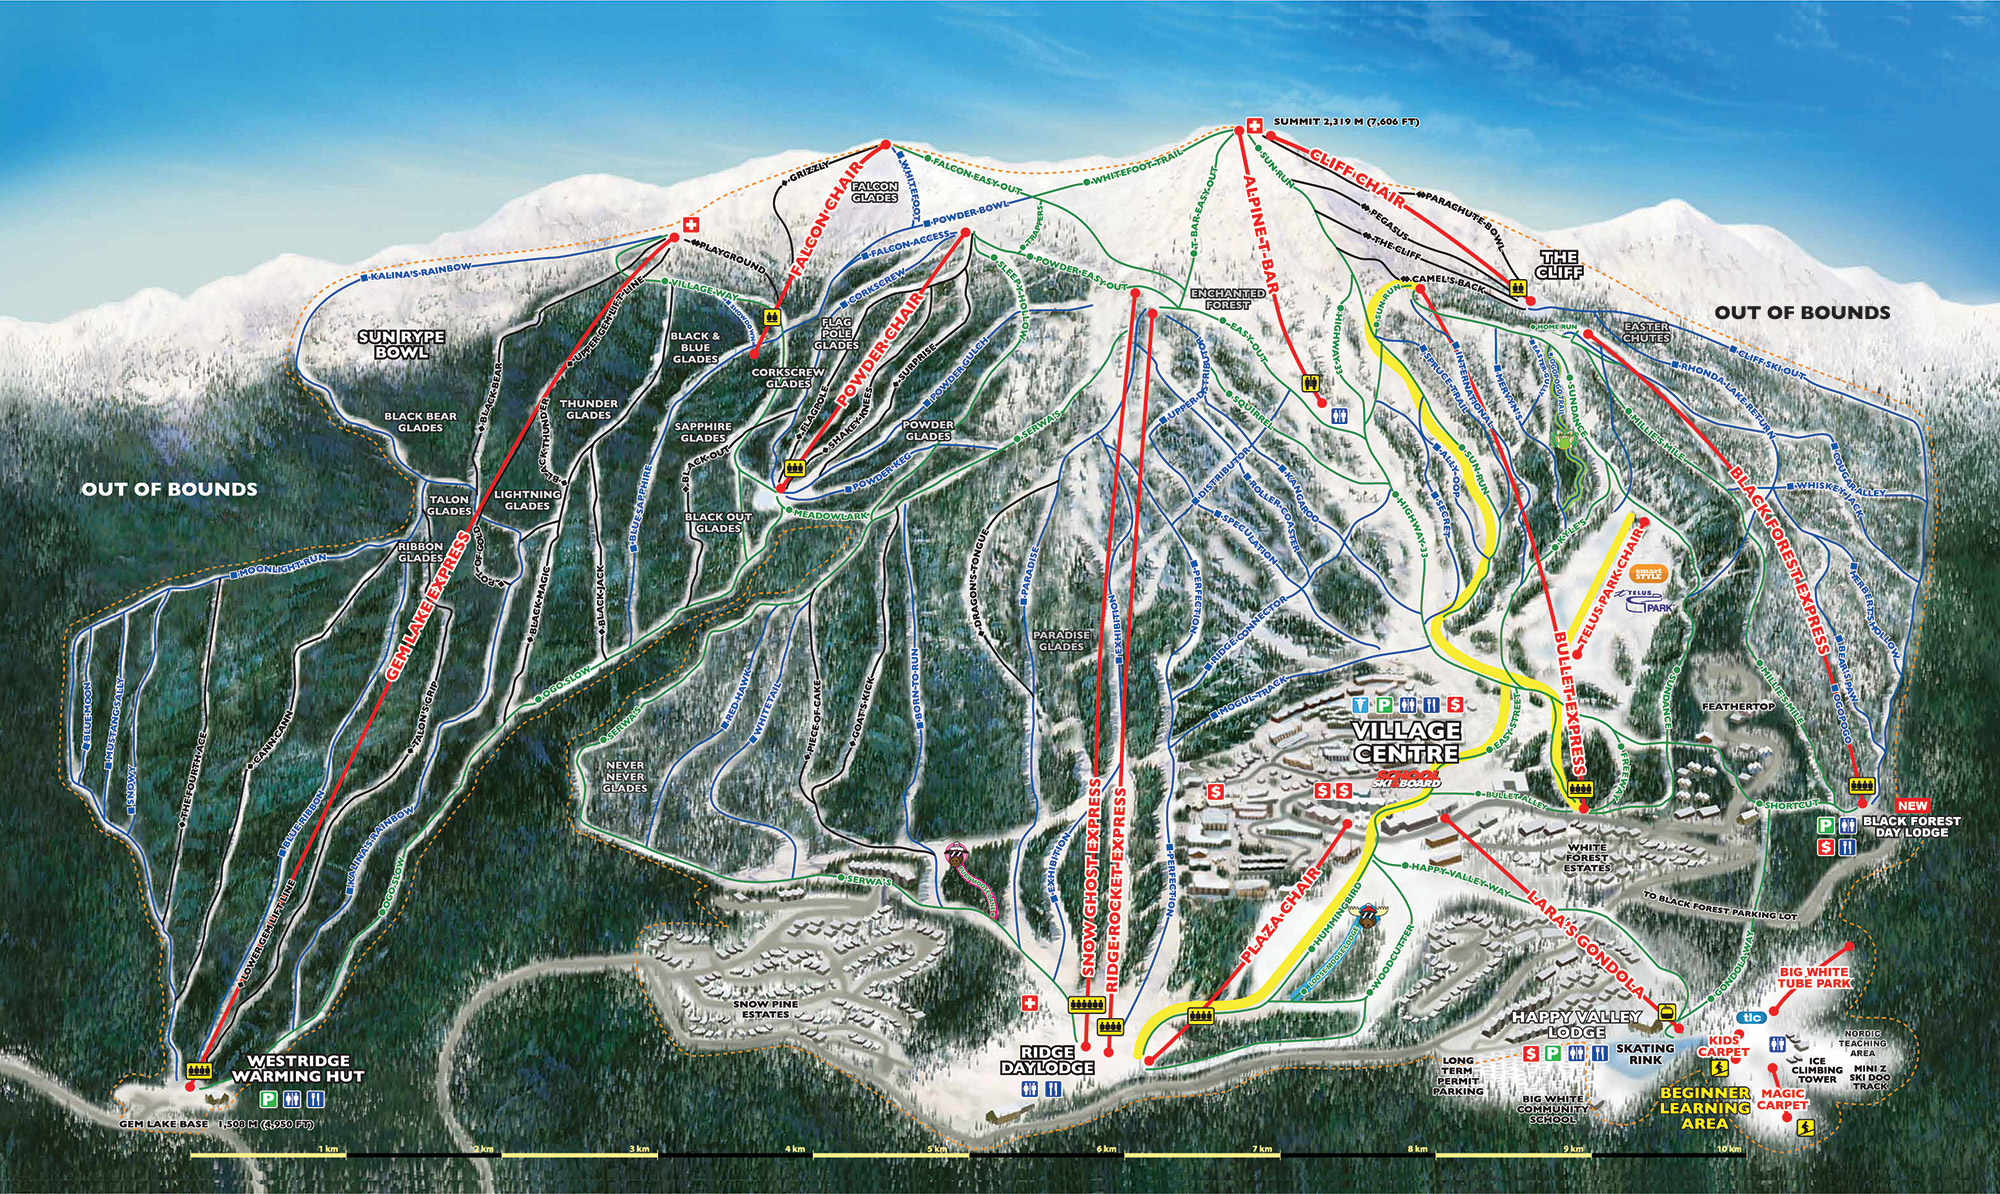 sun valley ski map with Maps Brochures on Mappa Val Di Sole Inverno furthermore San Fernando 8 additionally Trailmap additionally Vernon furthermore Maps Brochures.